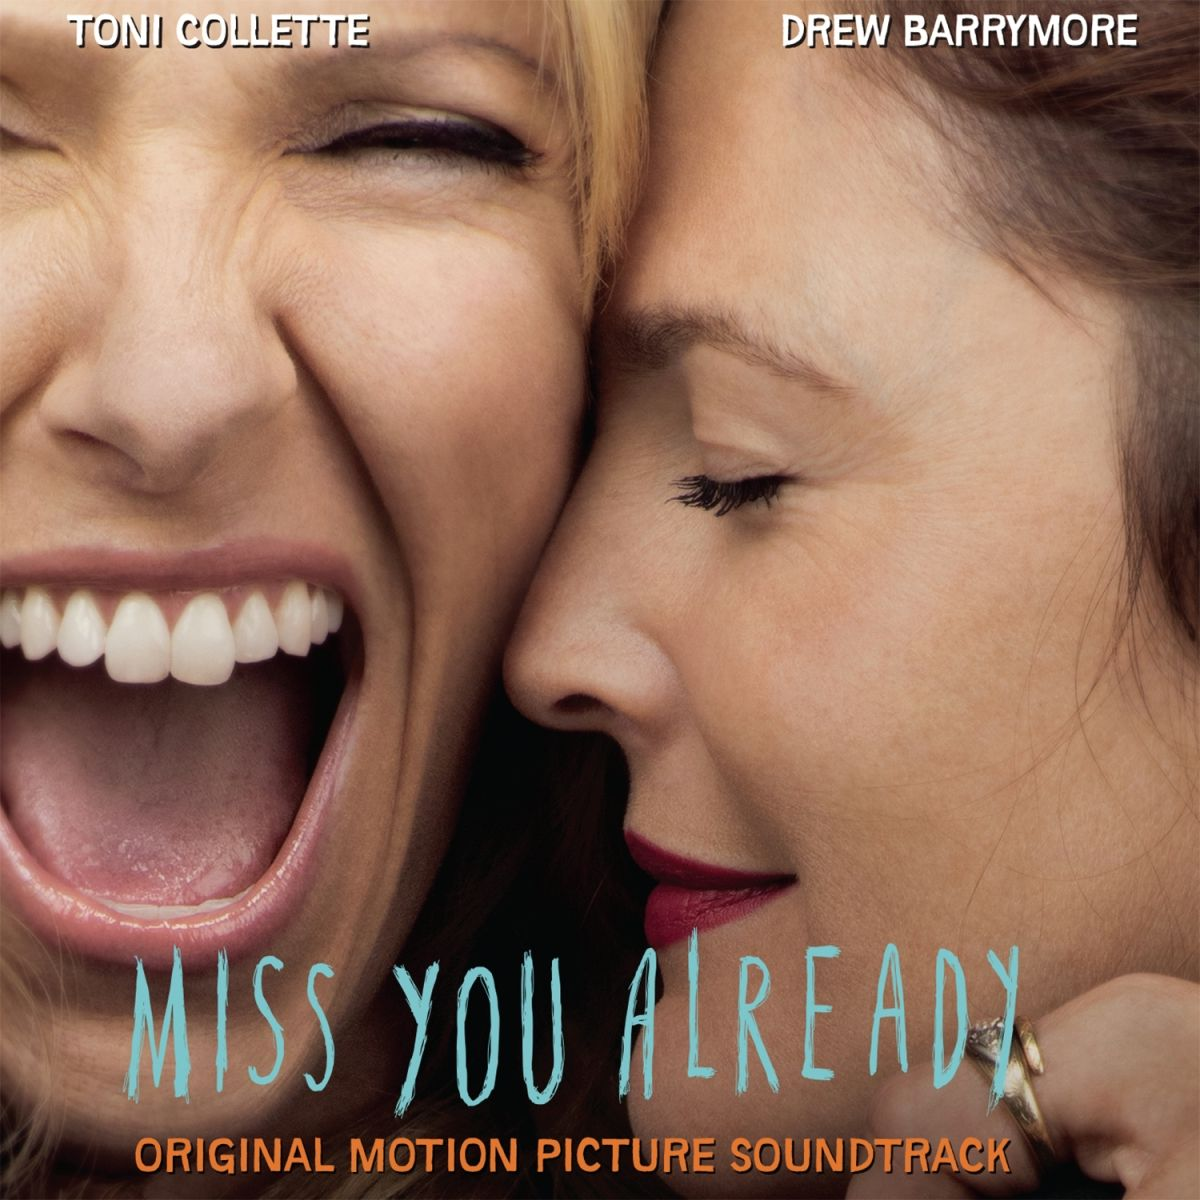 Miss You Already [Original Motion Picture Soundtrack]